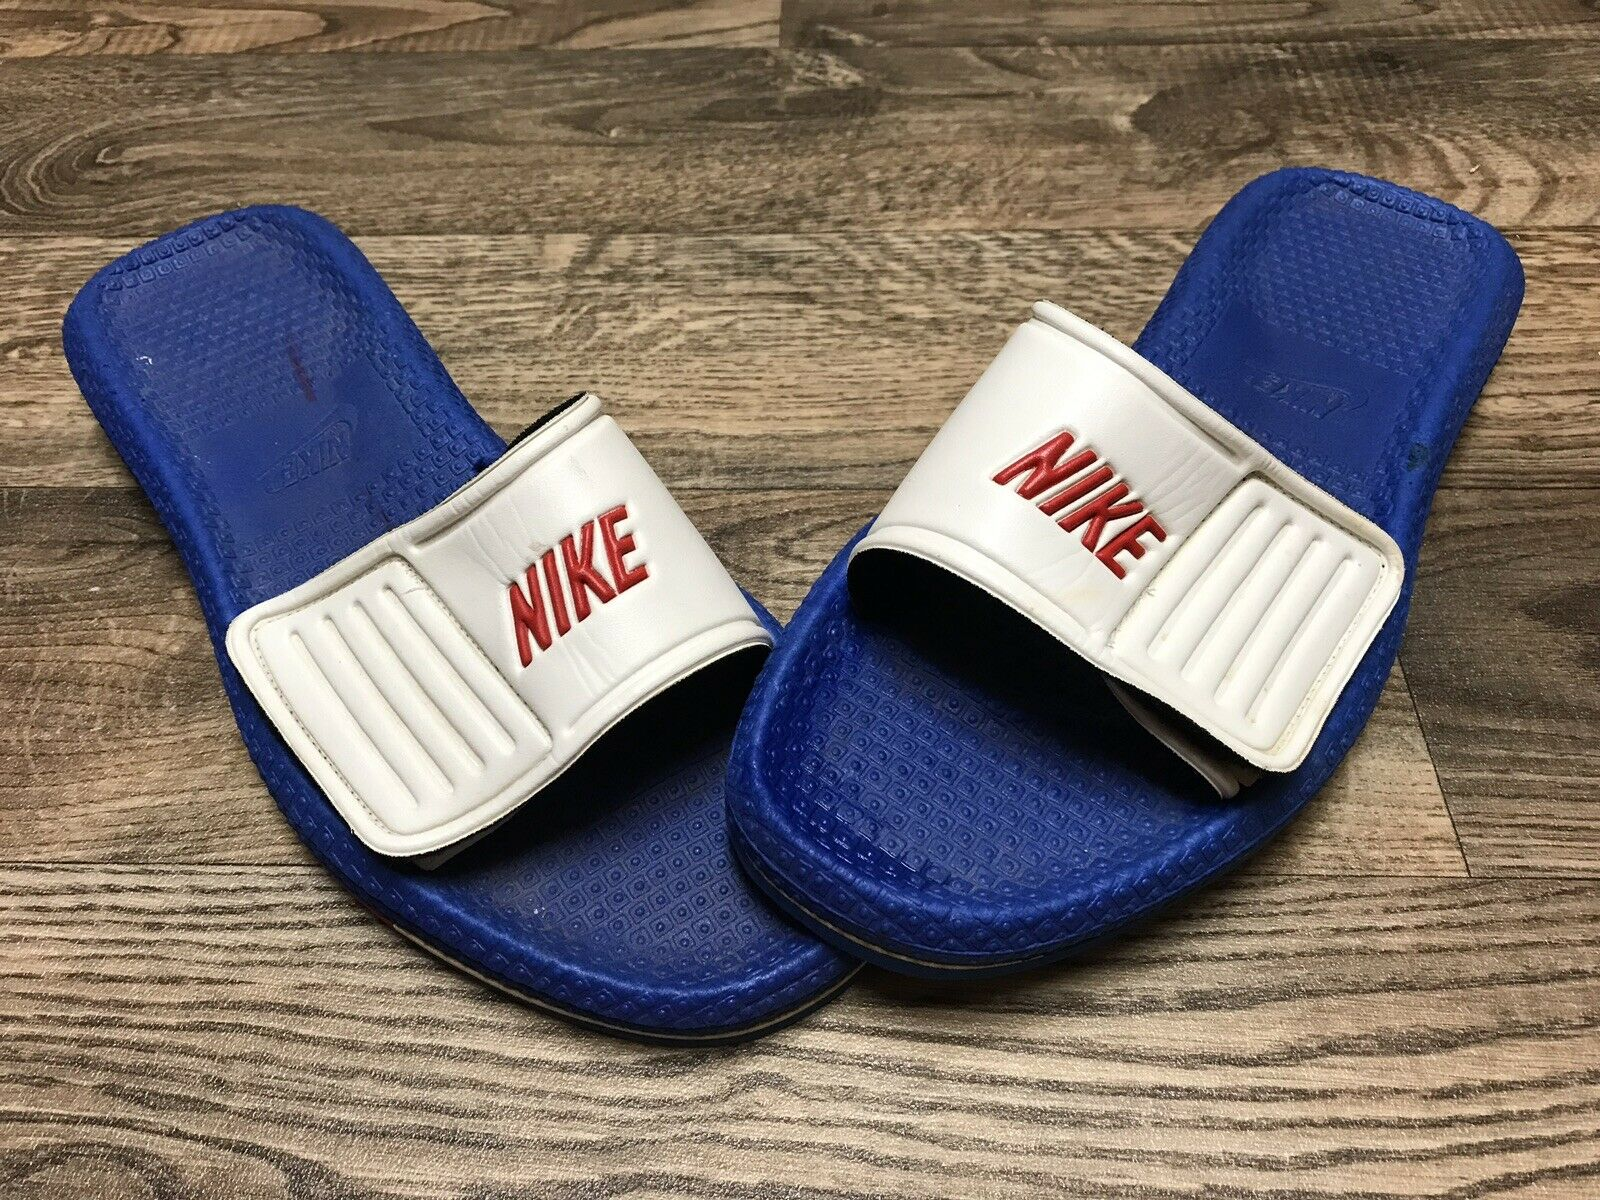 7ad3c2641e5 Vtg 70s 80s Nike Made In Taiwan Sandals Slides shoes Mens Size XL 12 - 13  ...